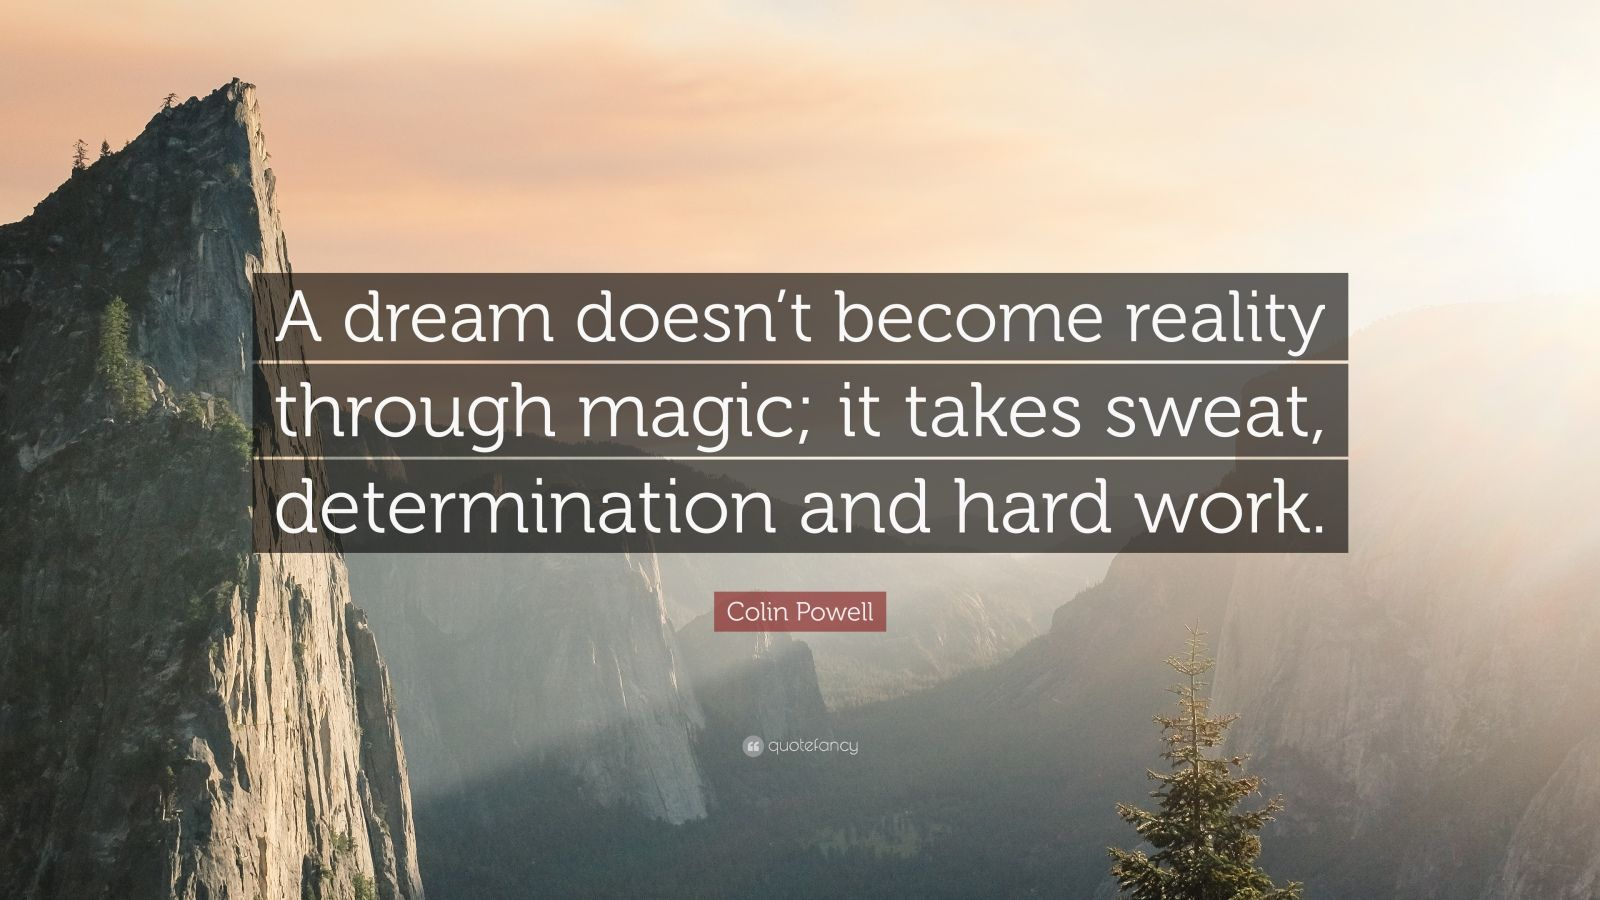 Desktop Wallpaper Motivational Quotes Colin Powell Quote A Dream Doesn T Become Reality